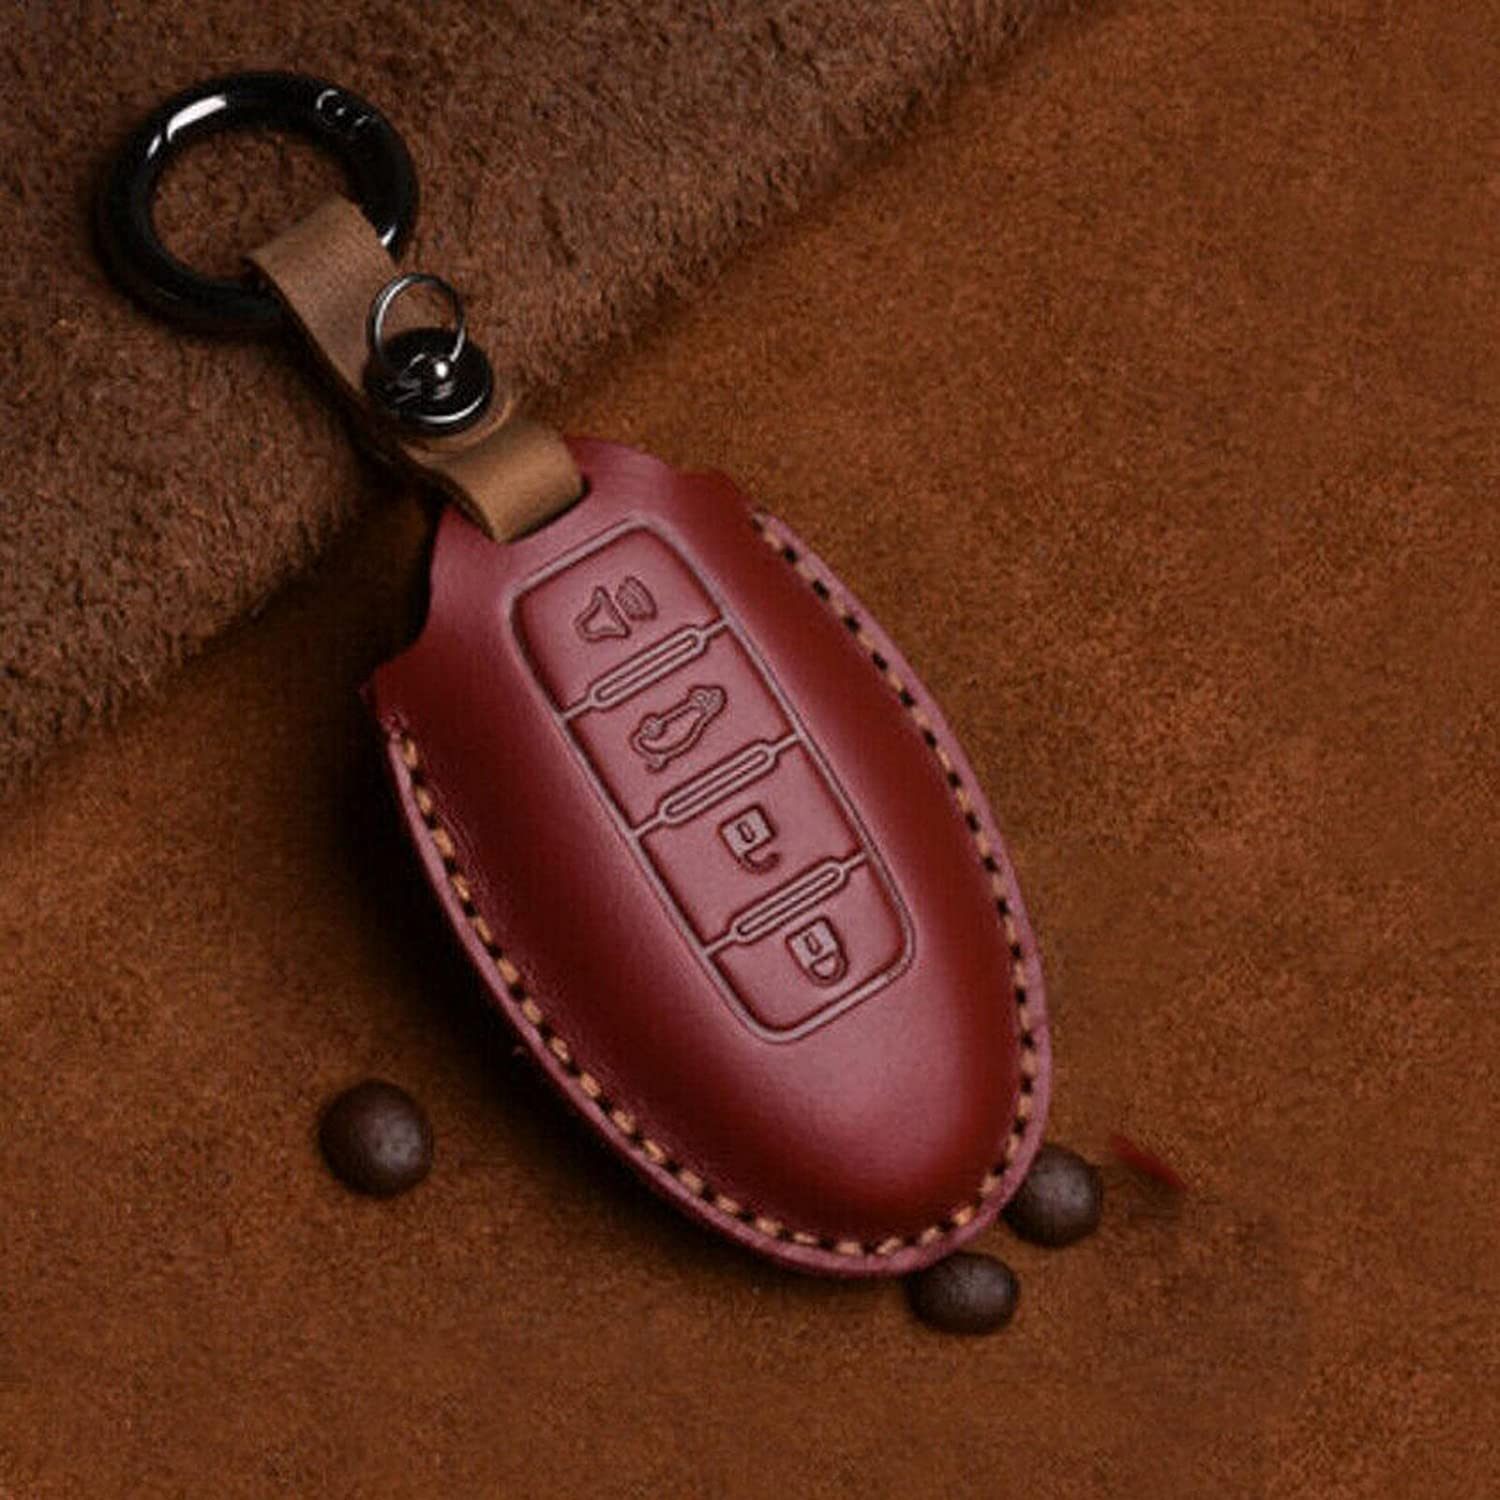 PIOLOSD Handmade Leather Car Key Cover 2020 for price Fit Max 83% OFF Nissan 2019